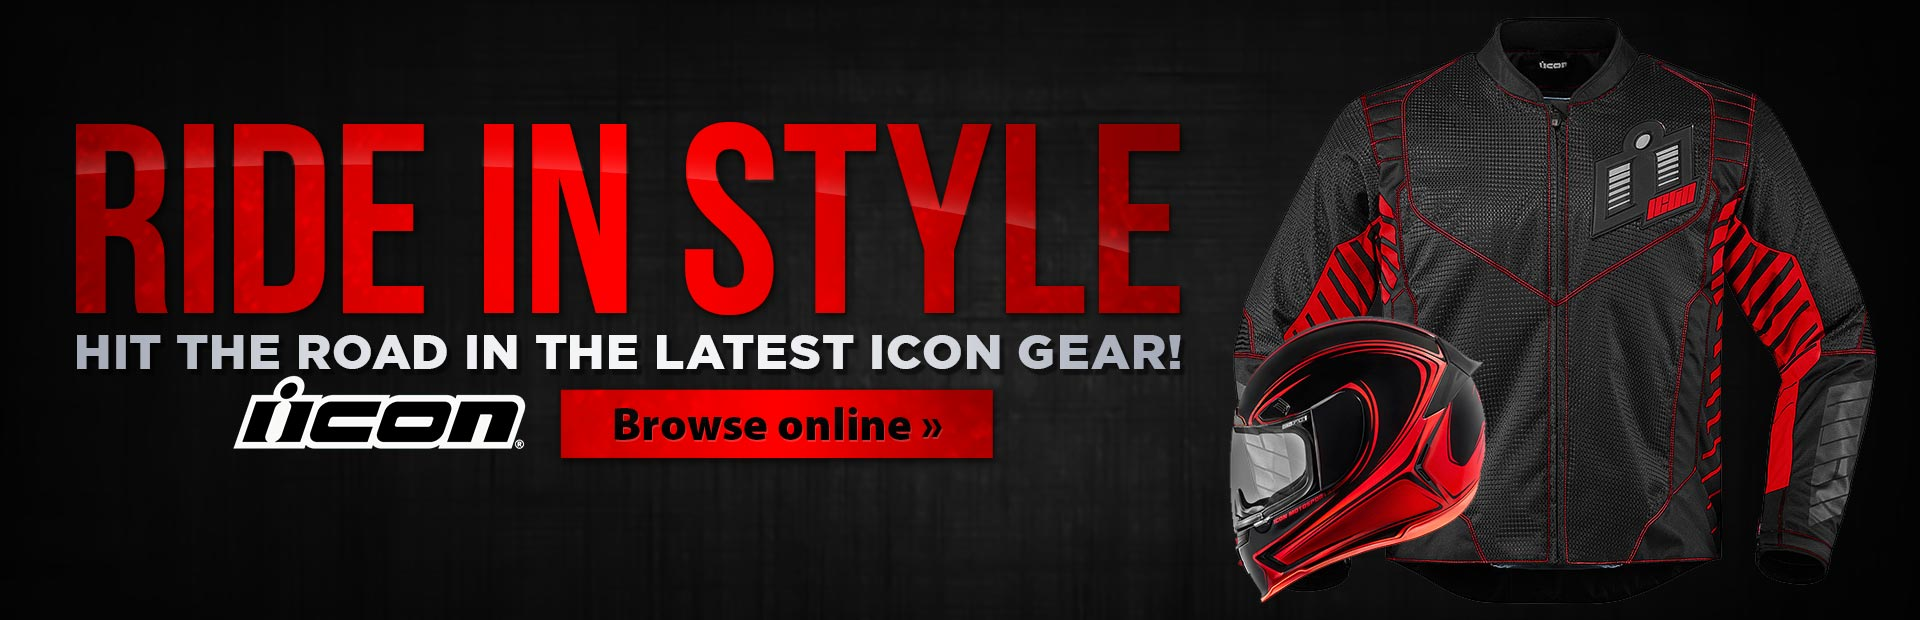 Click here to browse the latest Icon gear online!